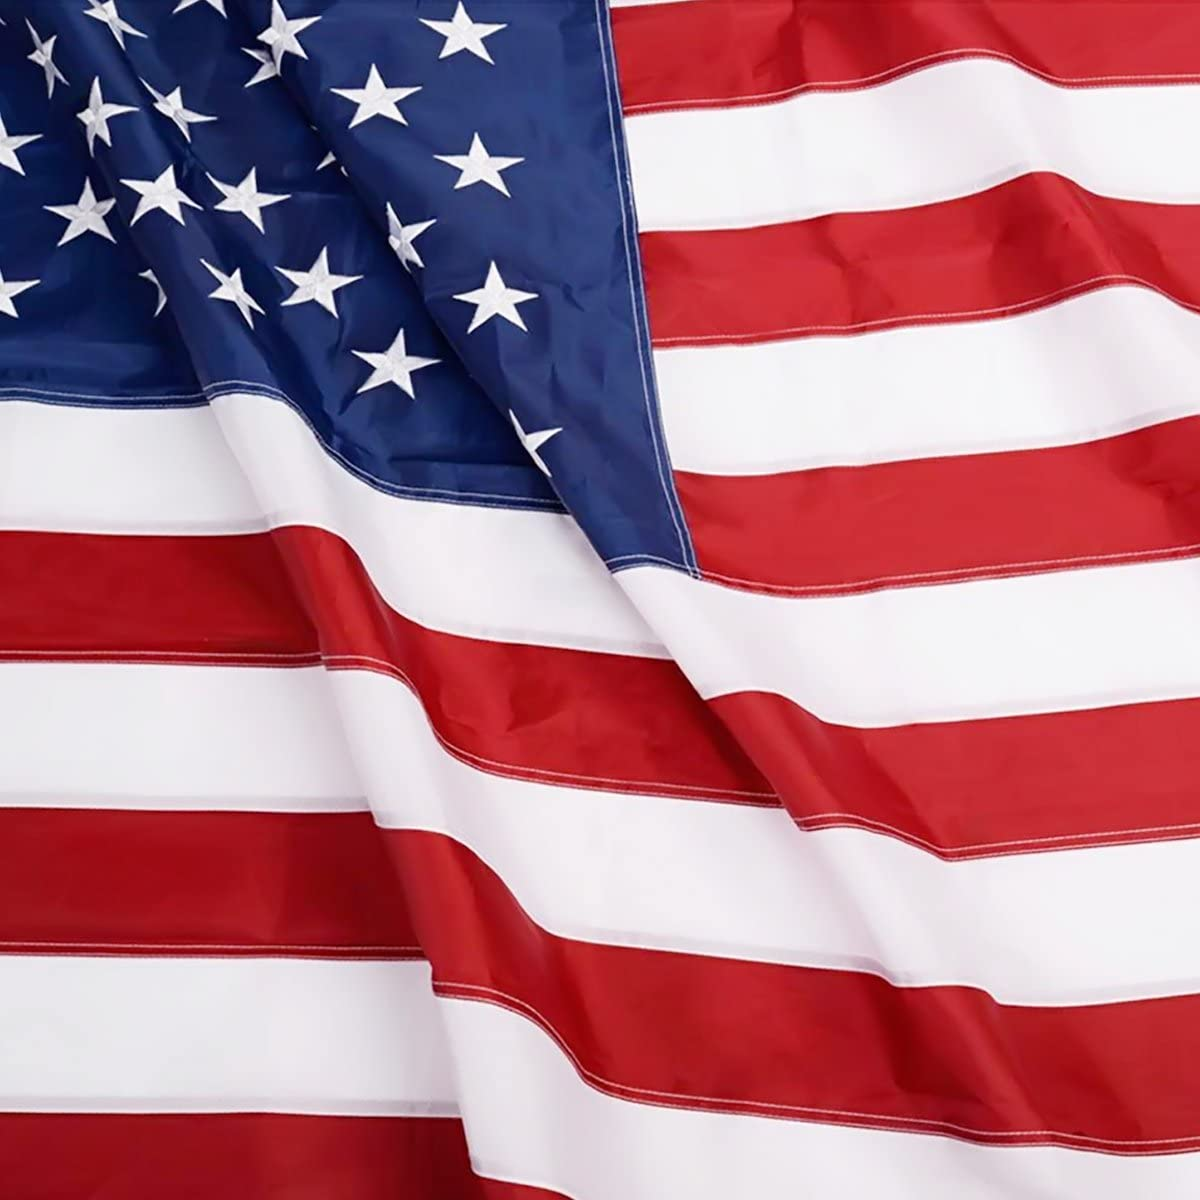 Anley EverStrong Series American US Flag 4x6 Foot Heavy Duty Nylon - Embroidered Stars and Sewn Stripes - 4 Rows of Lock Stitching - USA Banner Flags with Brass Grommets 4 X 6 Ft